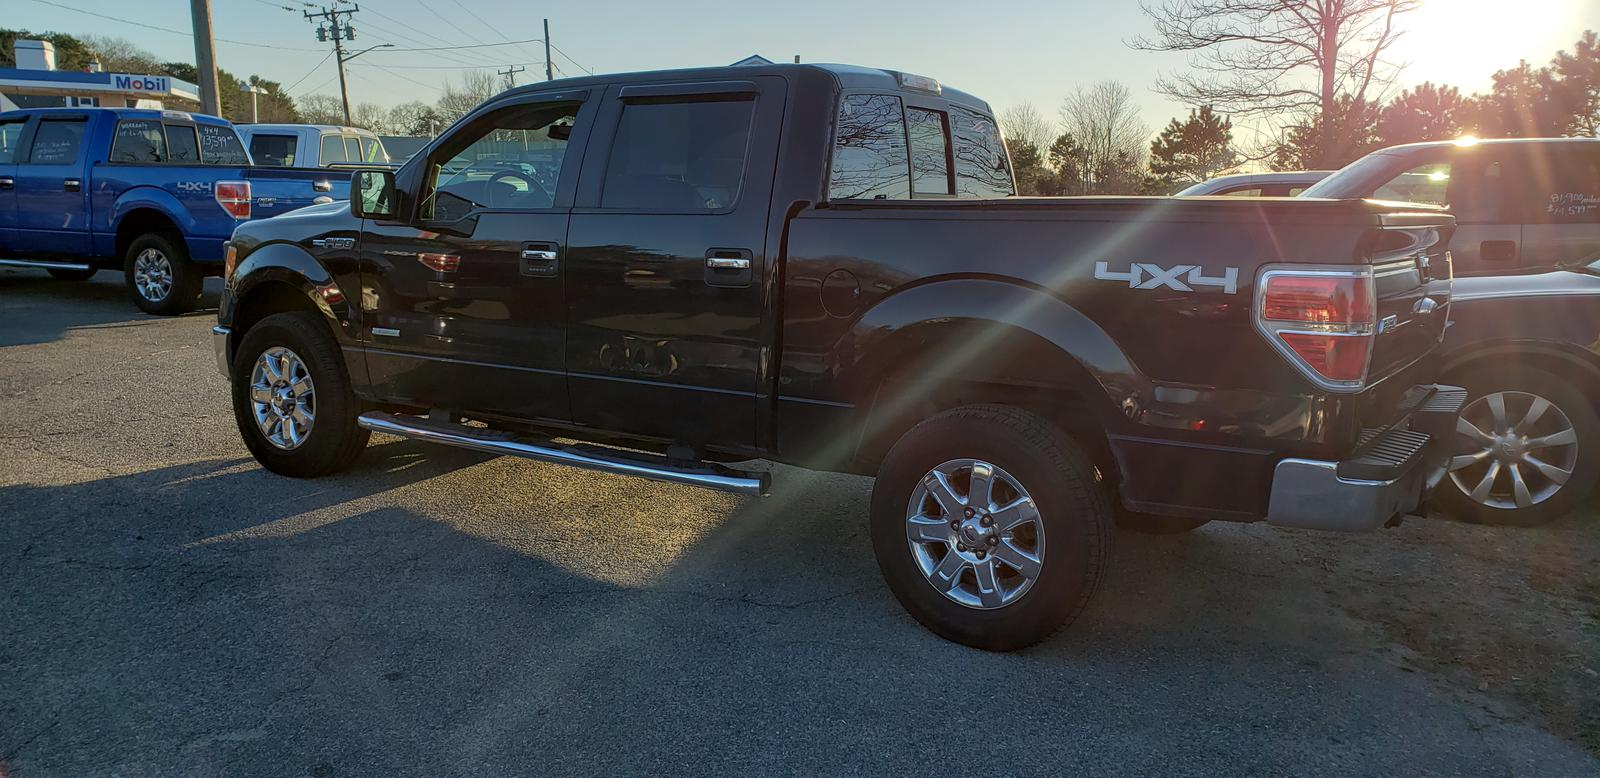 Ford F150 4x4 2013 Ford Ford F150 Supercrew Cab Xlt 5 5 Ft 4x4 For Sale In